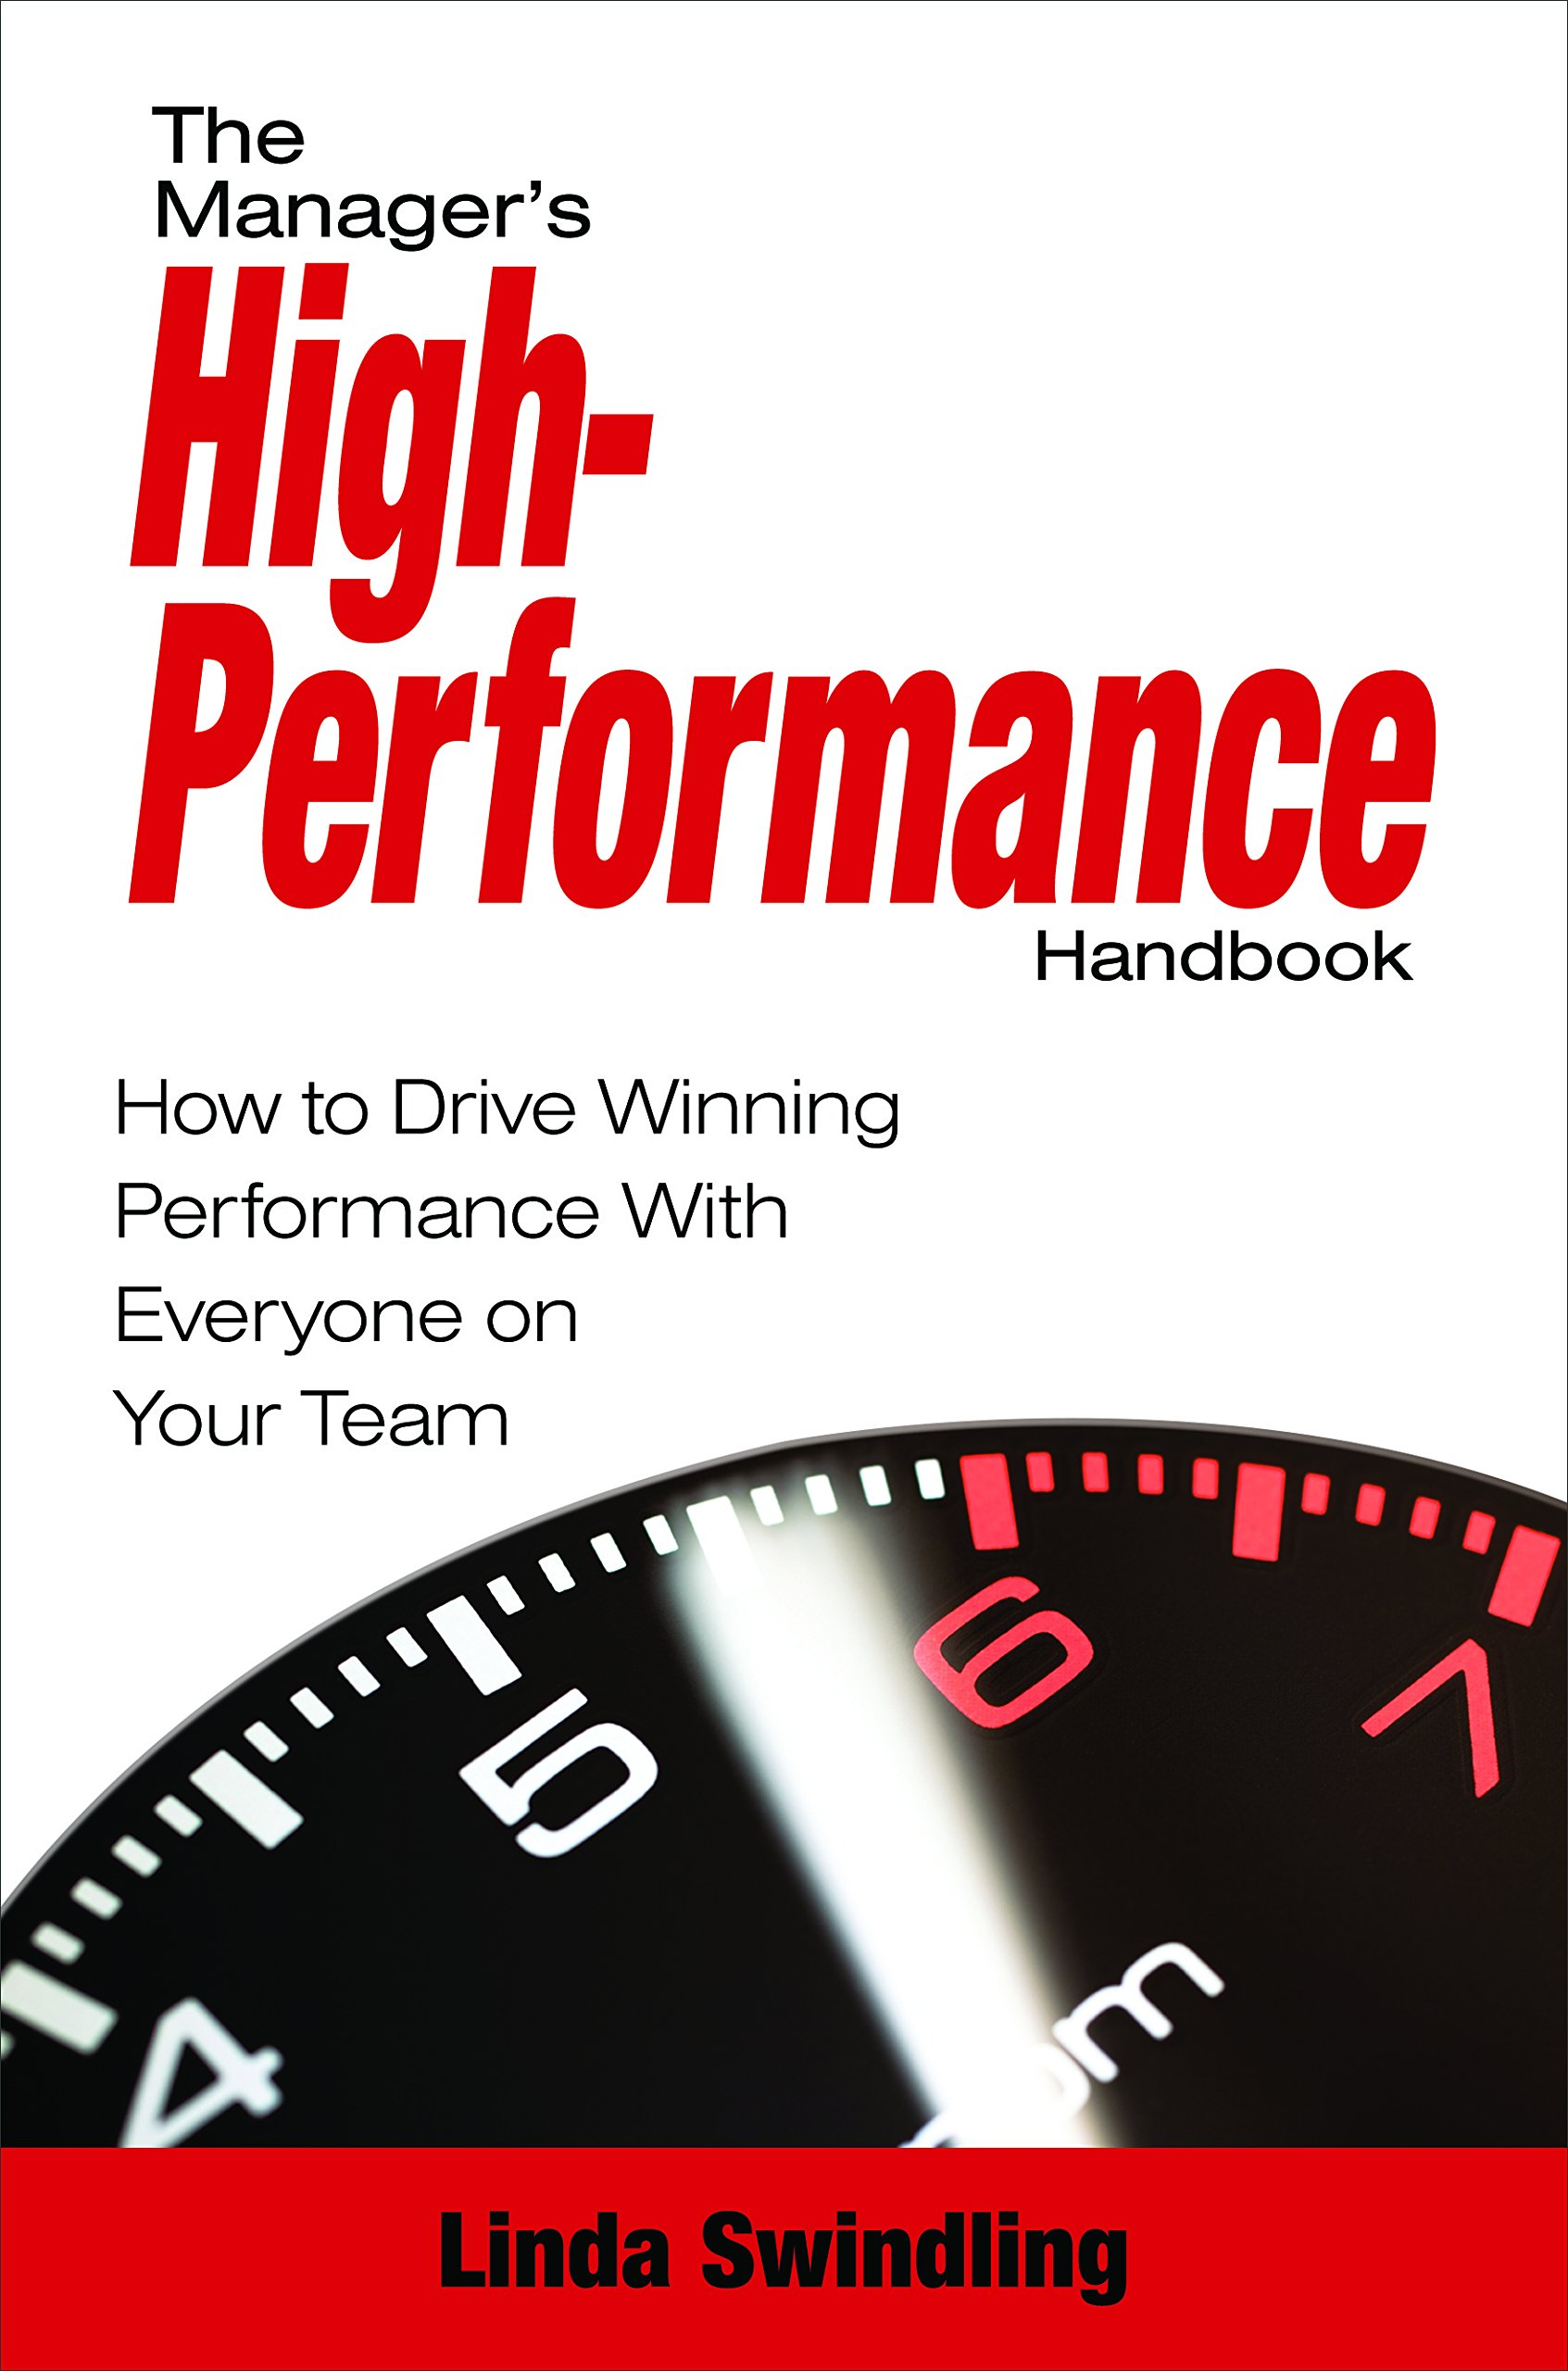 Managers High Performance Handbook Linda Swindling Book Cover.jpg